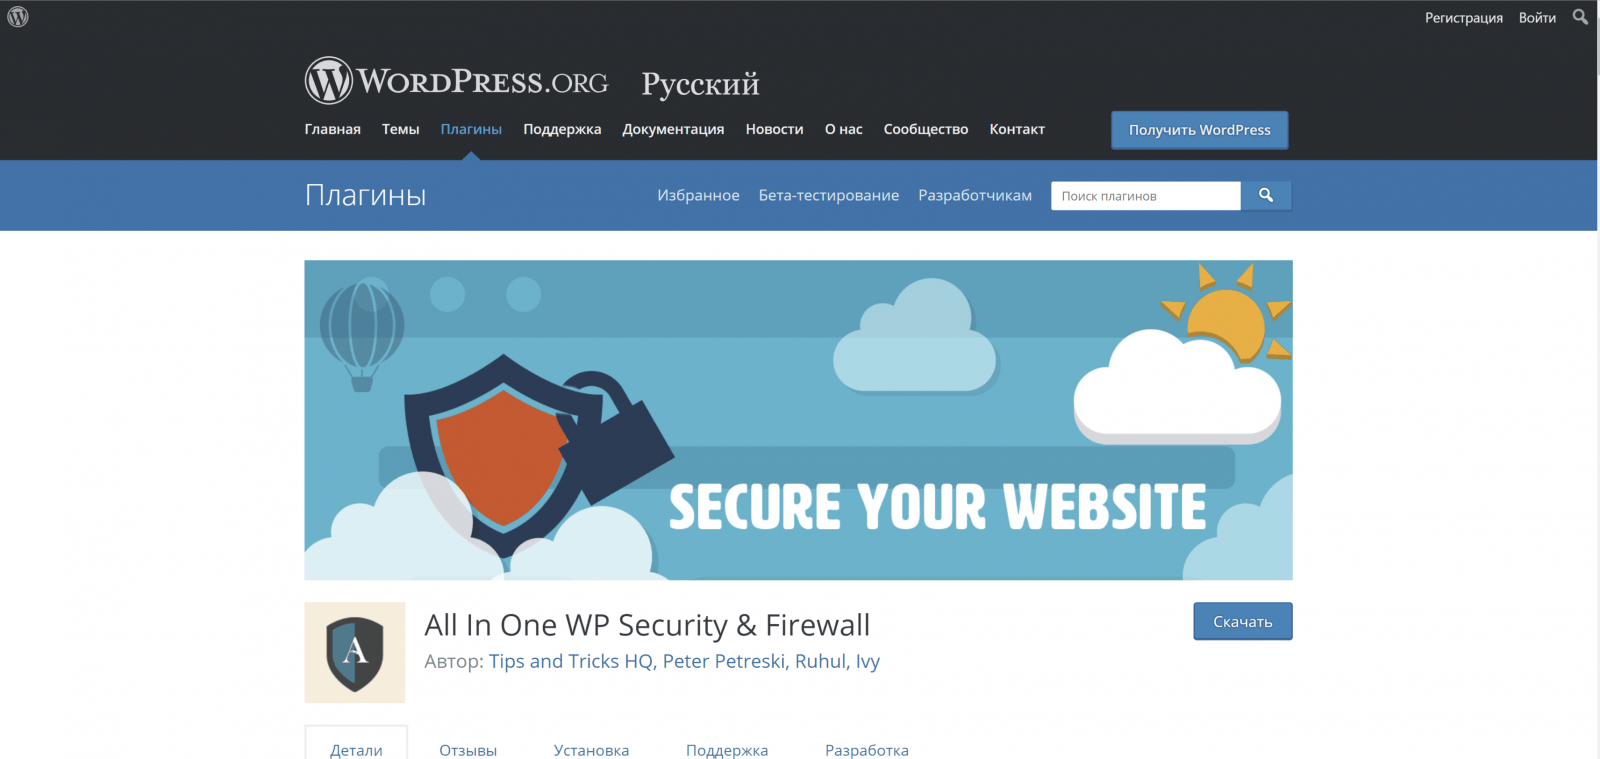 all in one wpsecurity and firewall